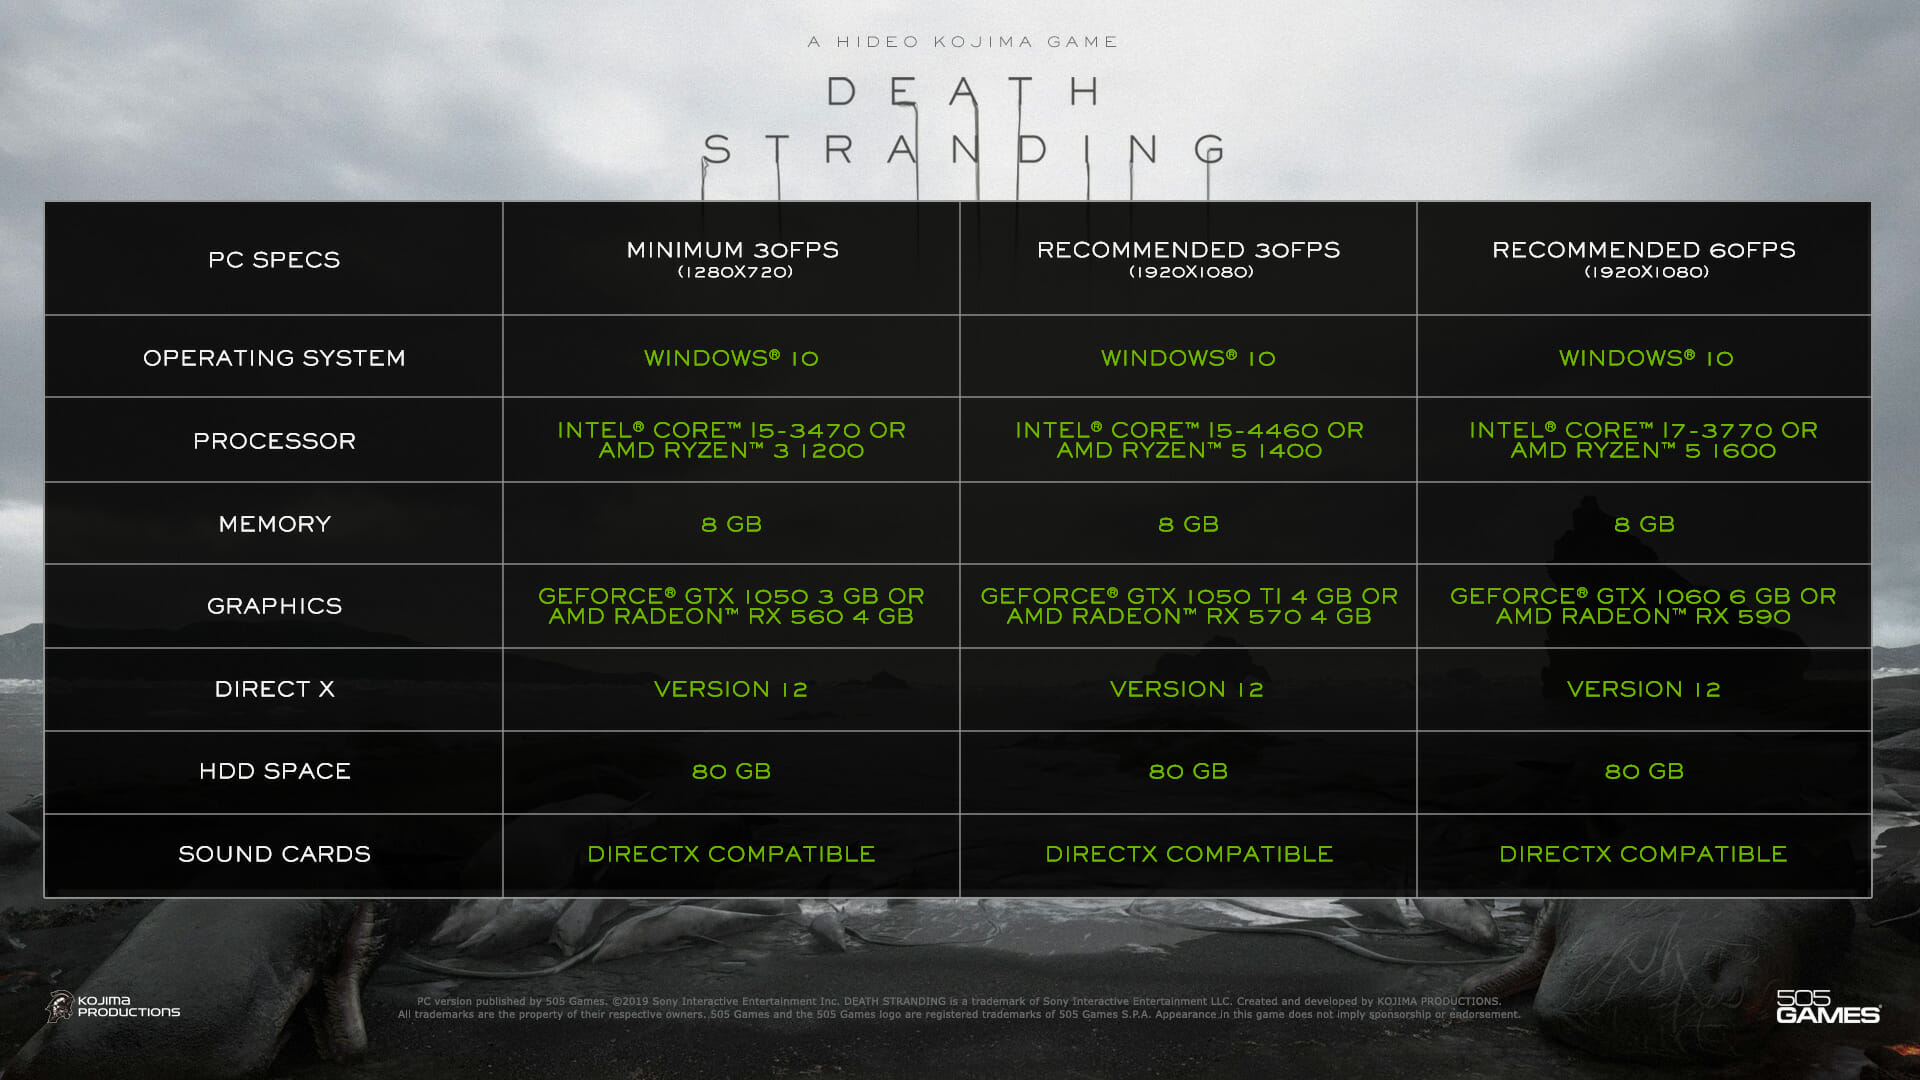 Death Stranding Pc Requirements Revealed Ahead Of July Release